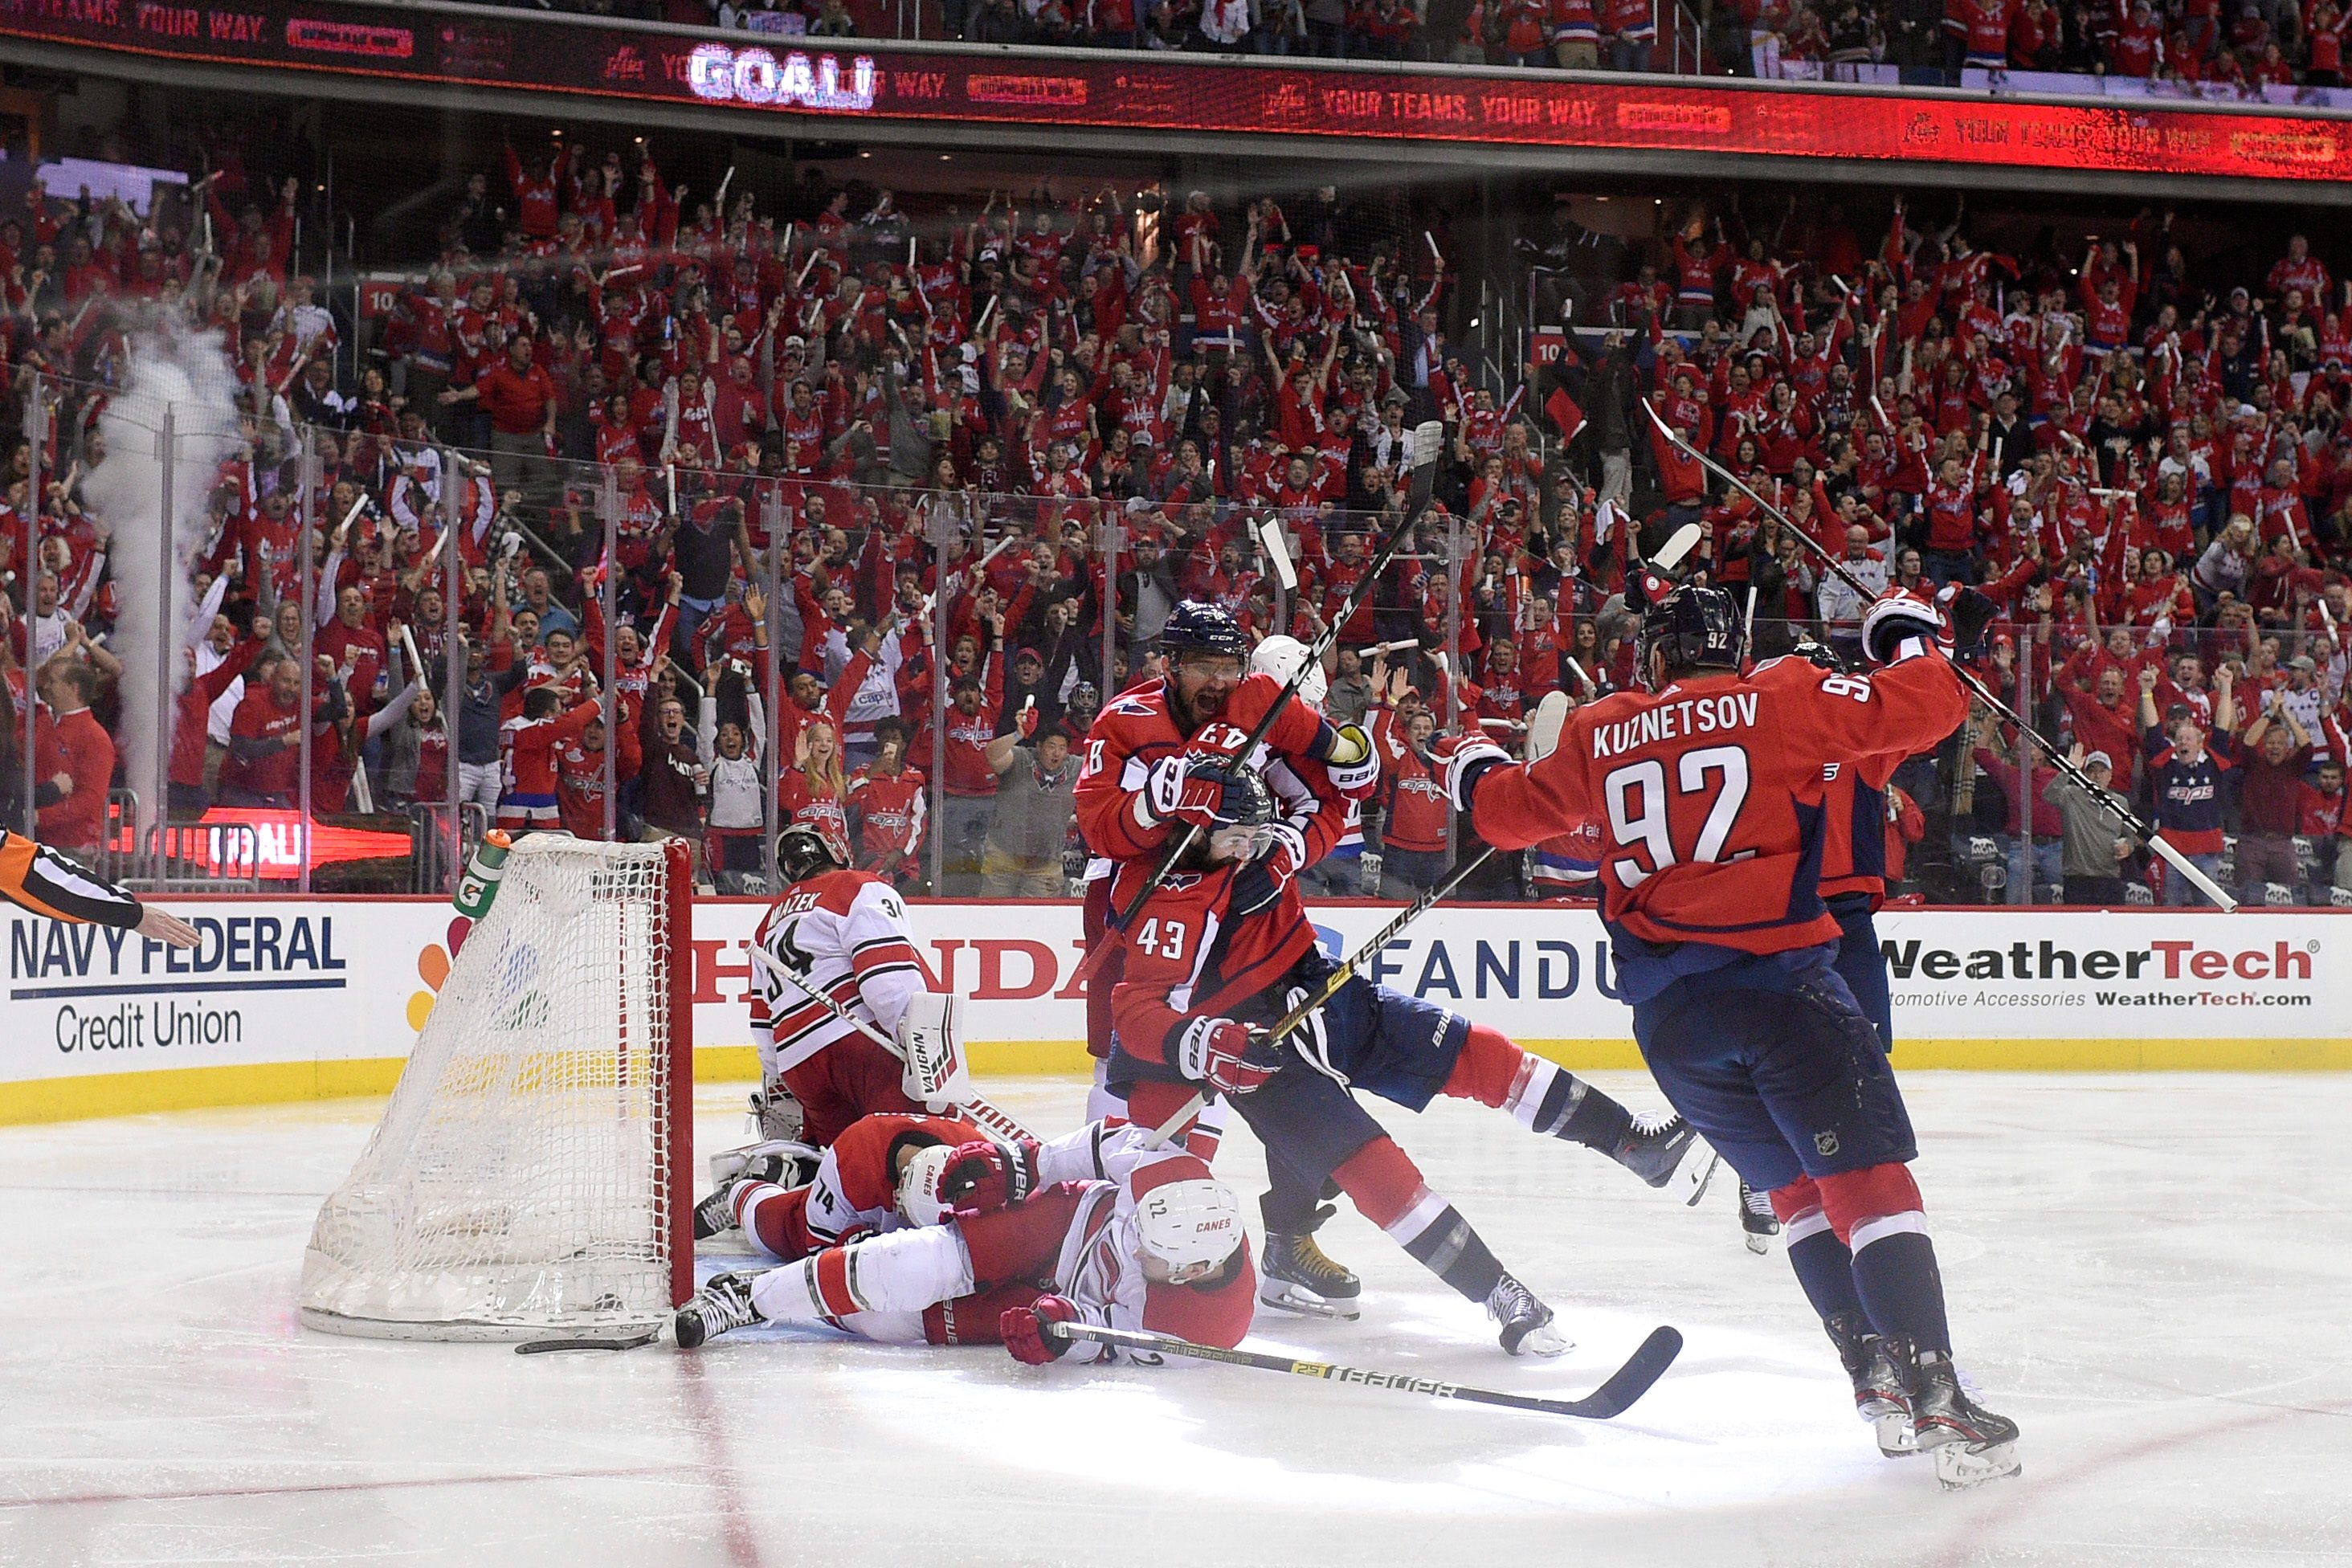 Capitals fans flood ticket market in final game of series